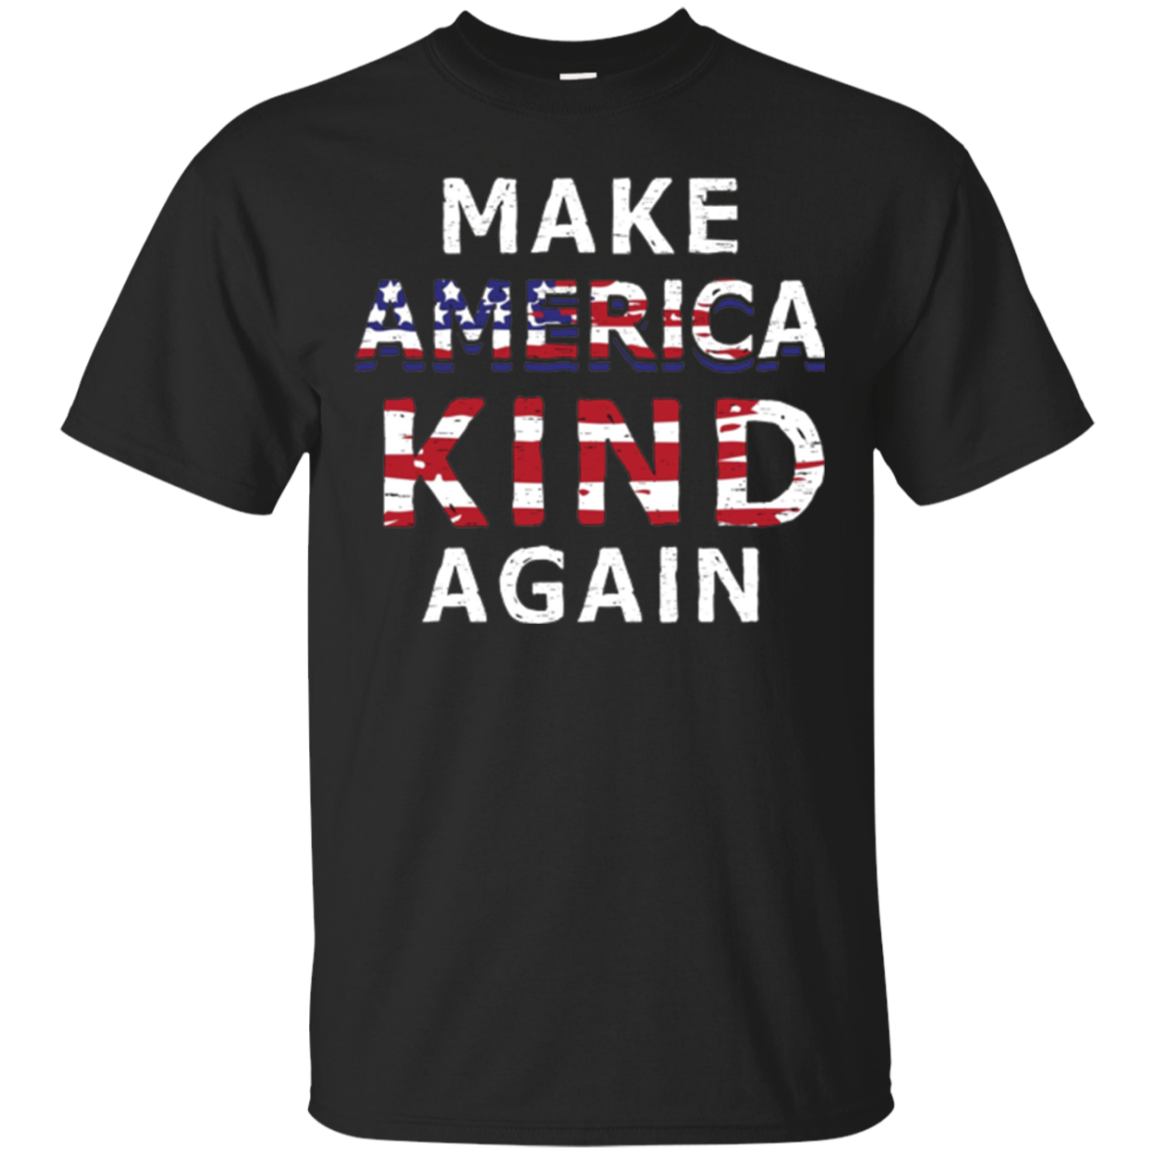 Make America Kind Again T-shirt, Anti-Trump July 4th Gift